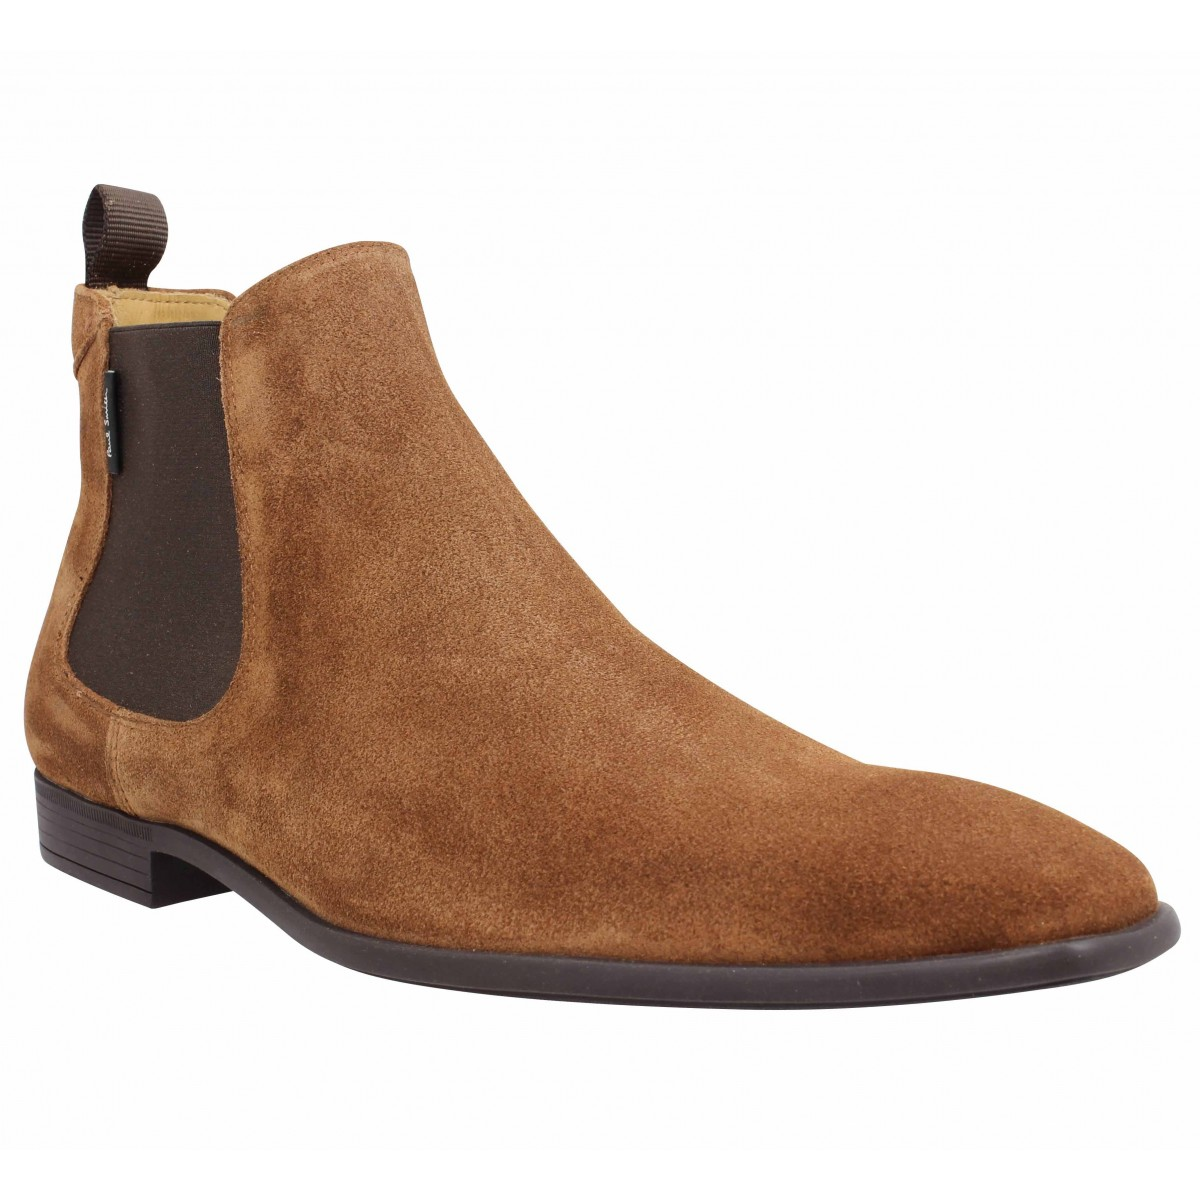 Paul Smith Homme Falconer Suede -41-tan